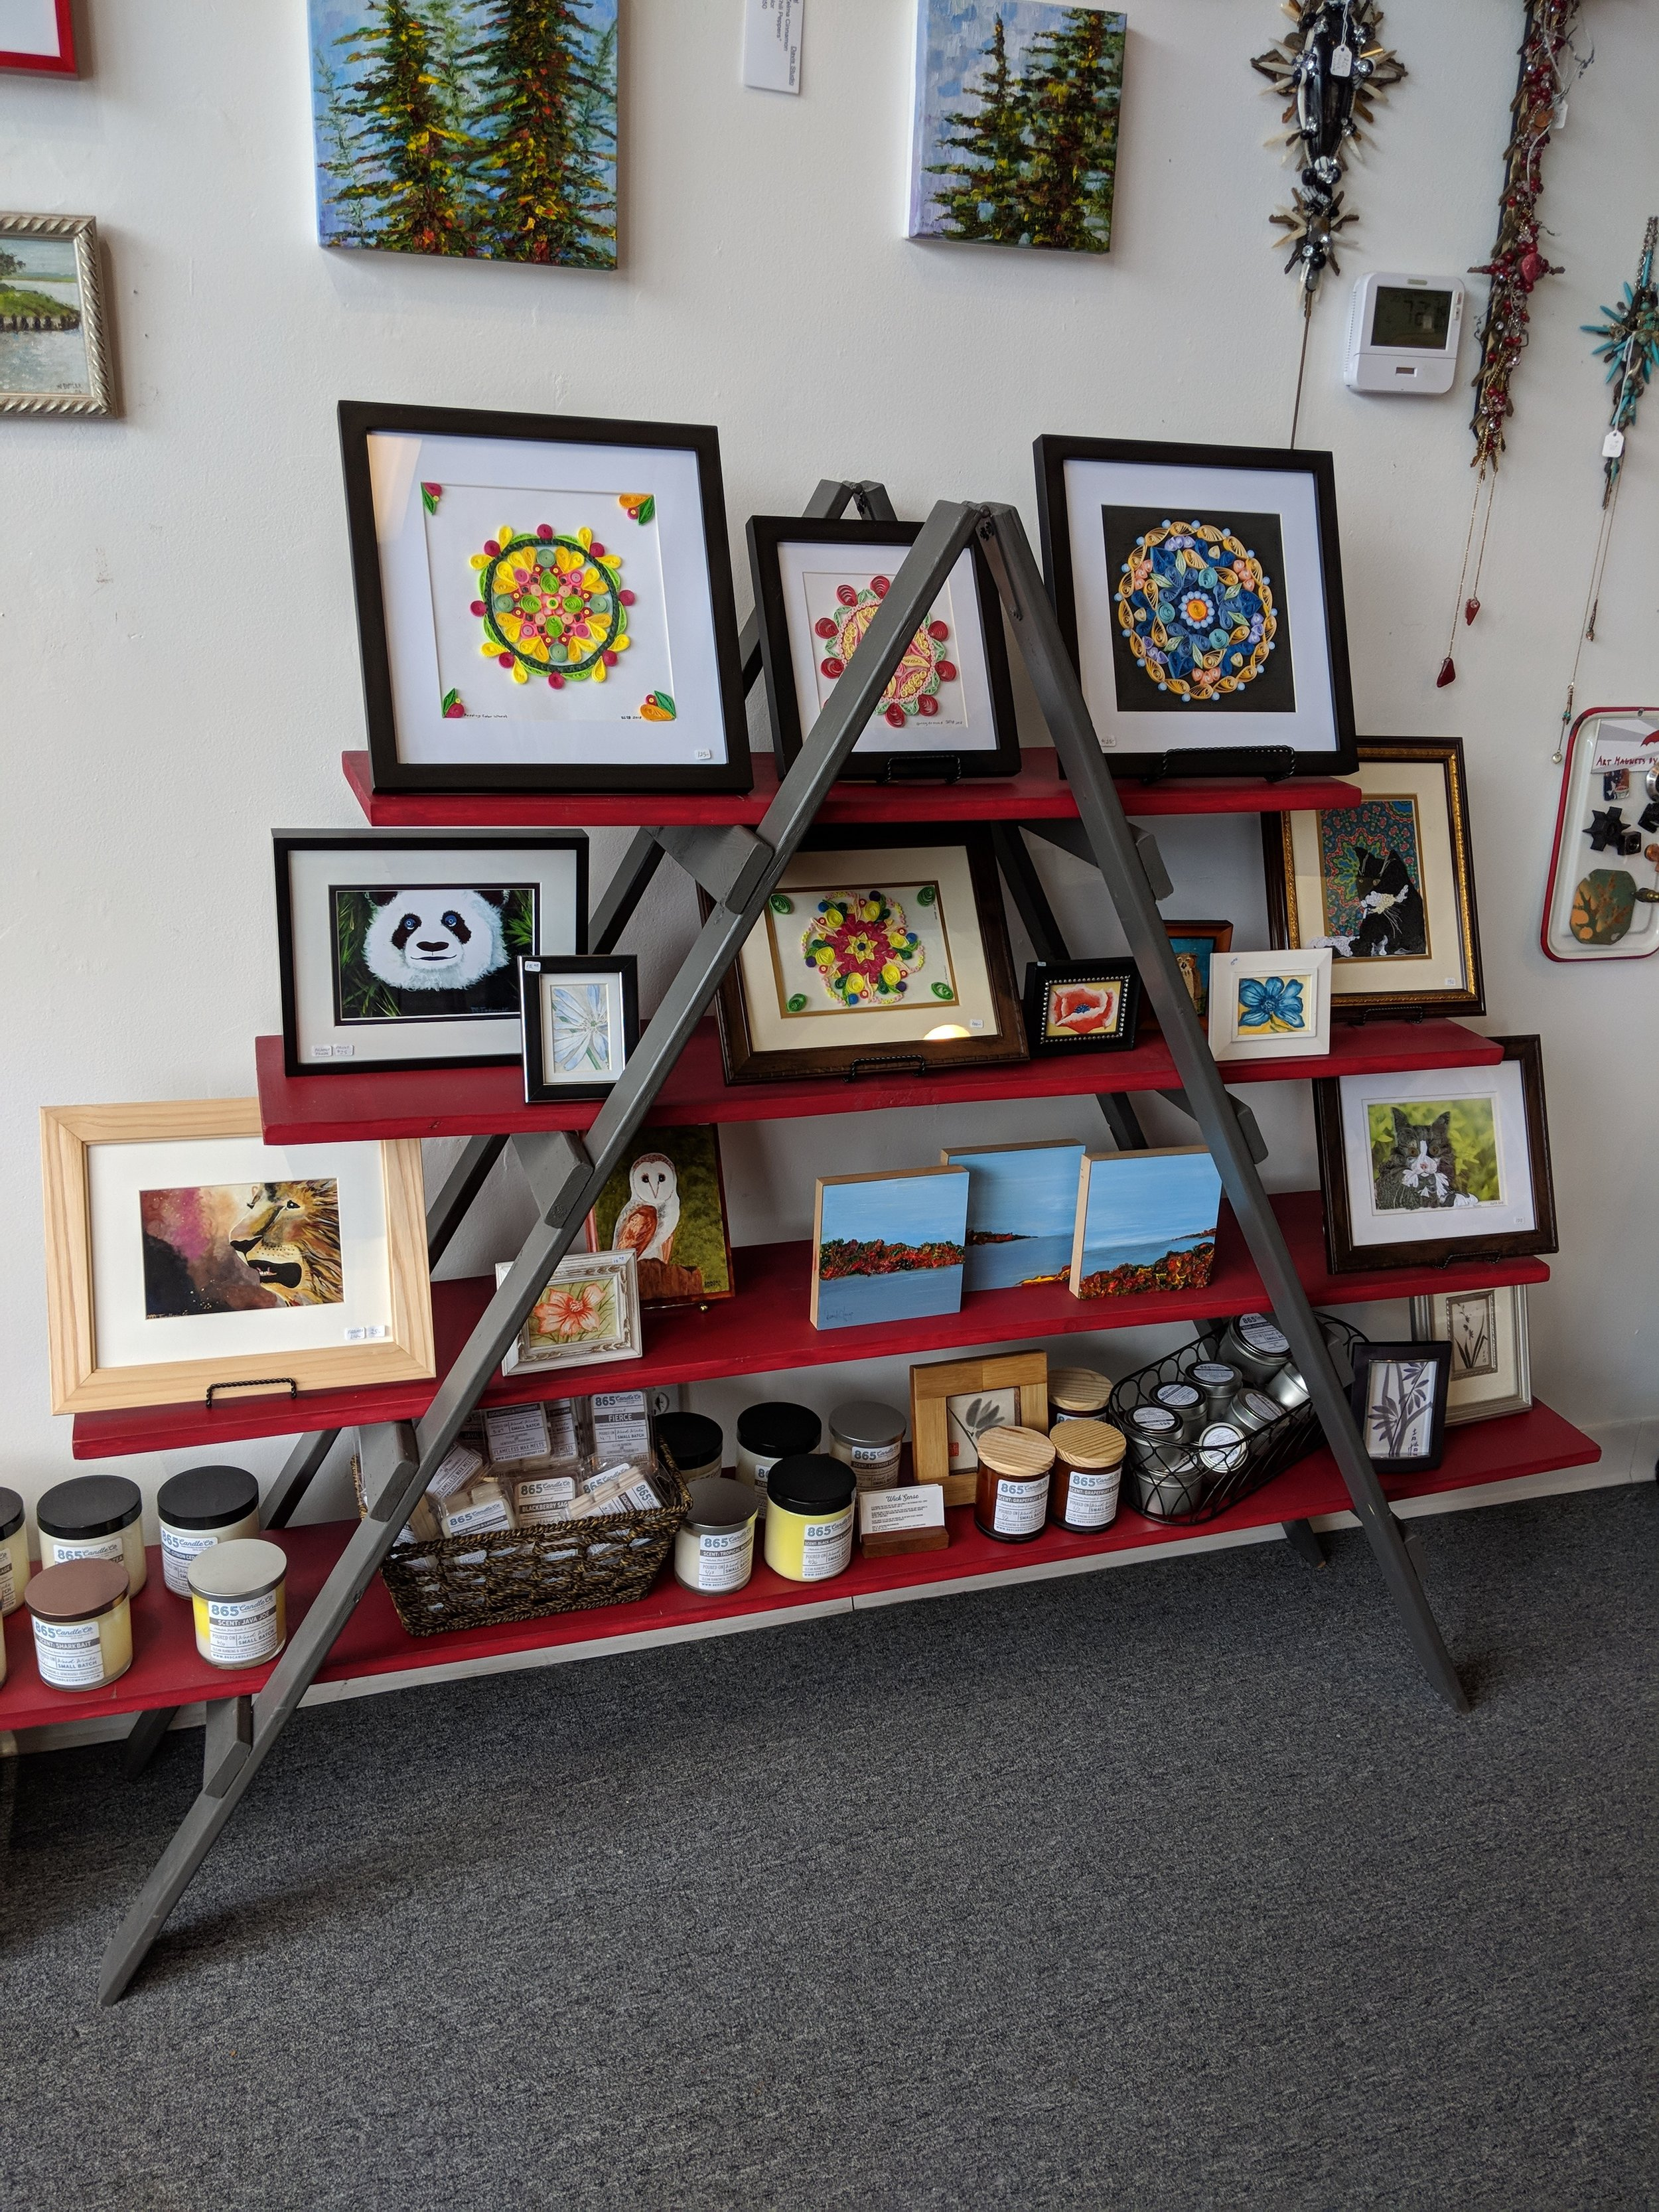 candles, soaps, and beautiful artworks from local artists!